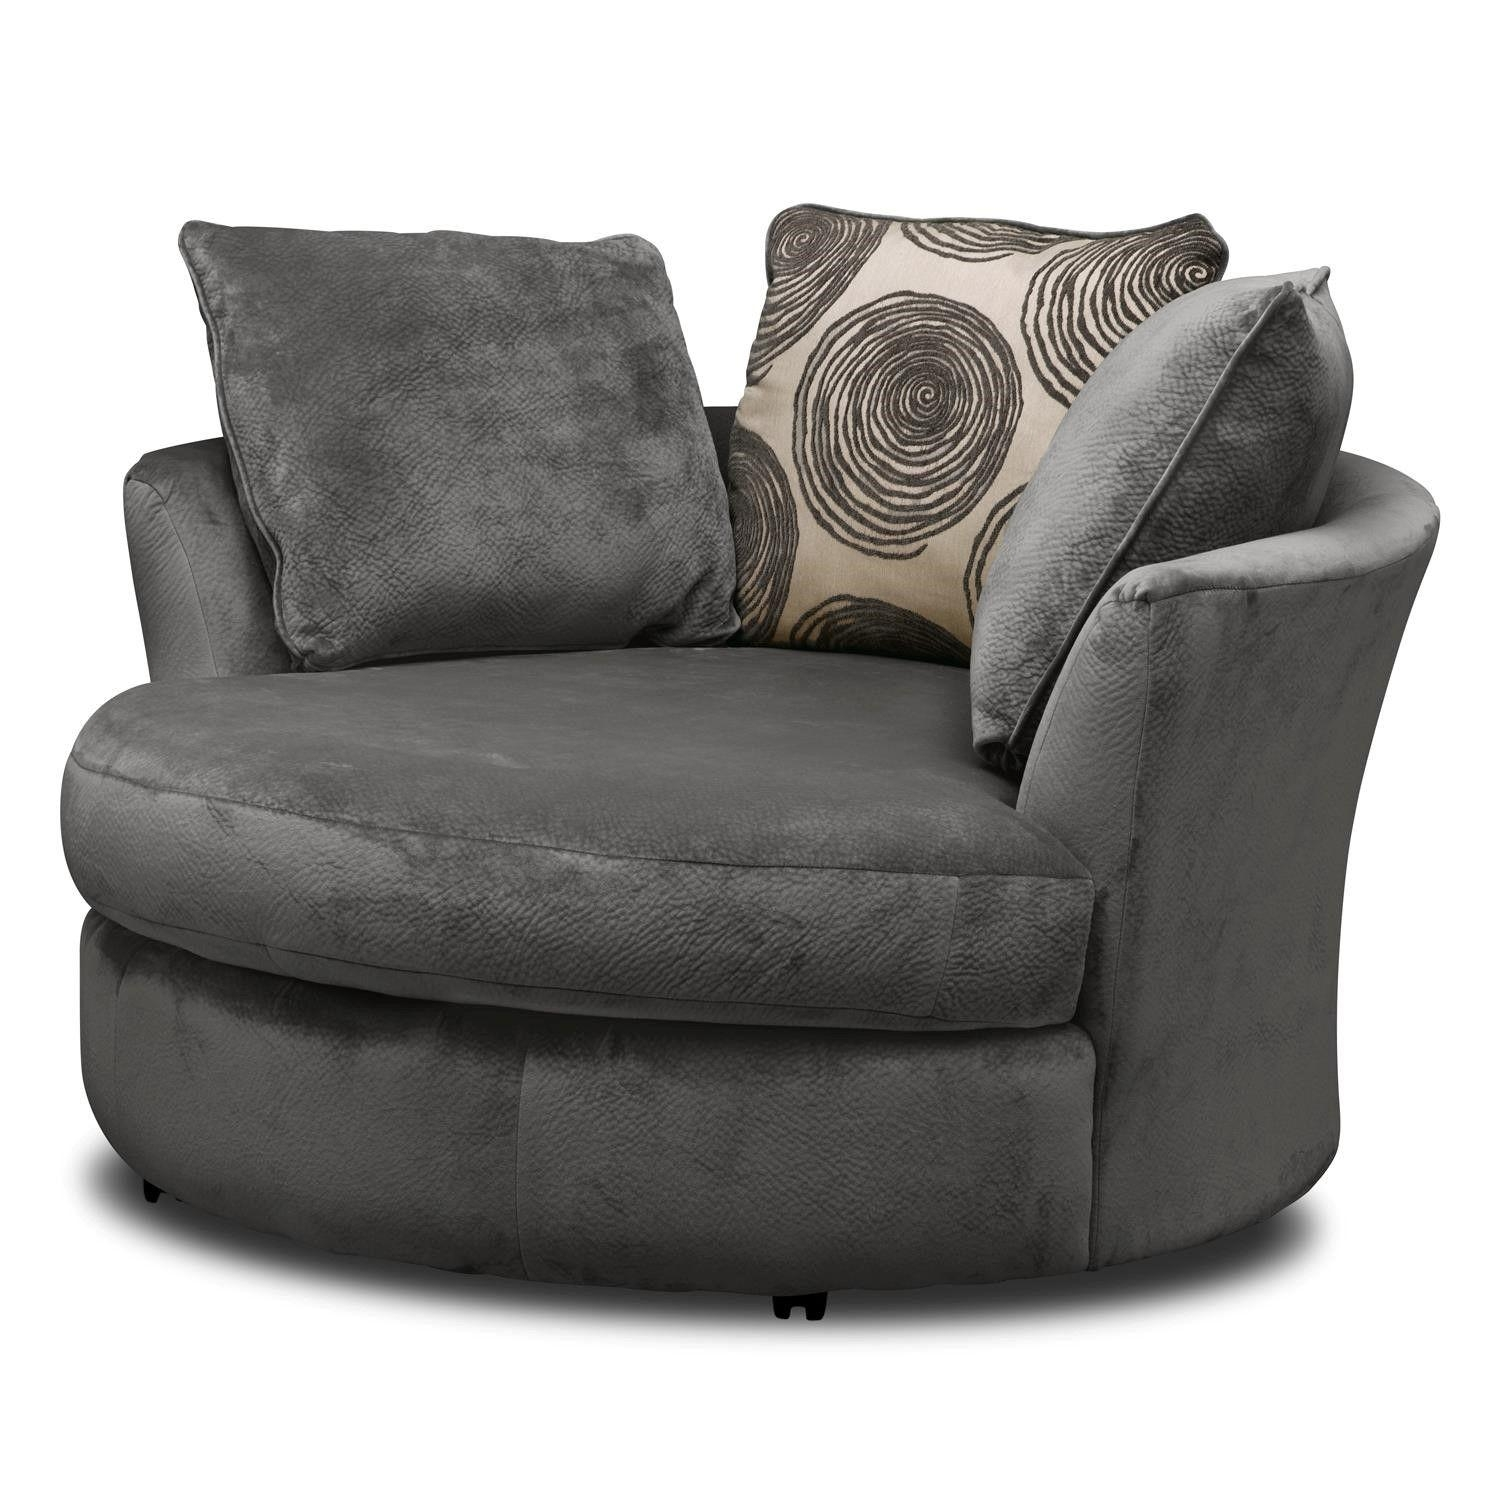 Lovely Swivel Sofa Chair 45 On Living Room Sofa Inspiration With Pertaining To Spinning Sofa Chairs (View 20 of 20)